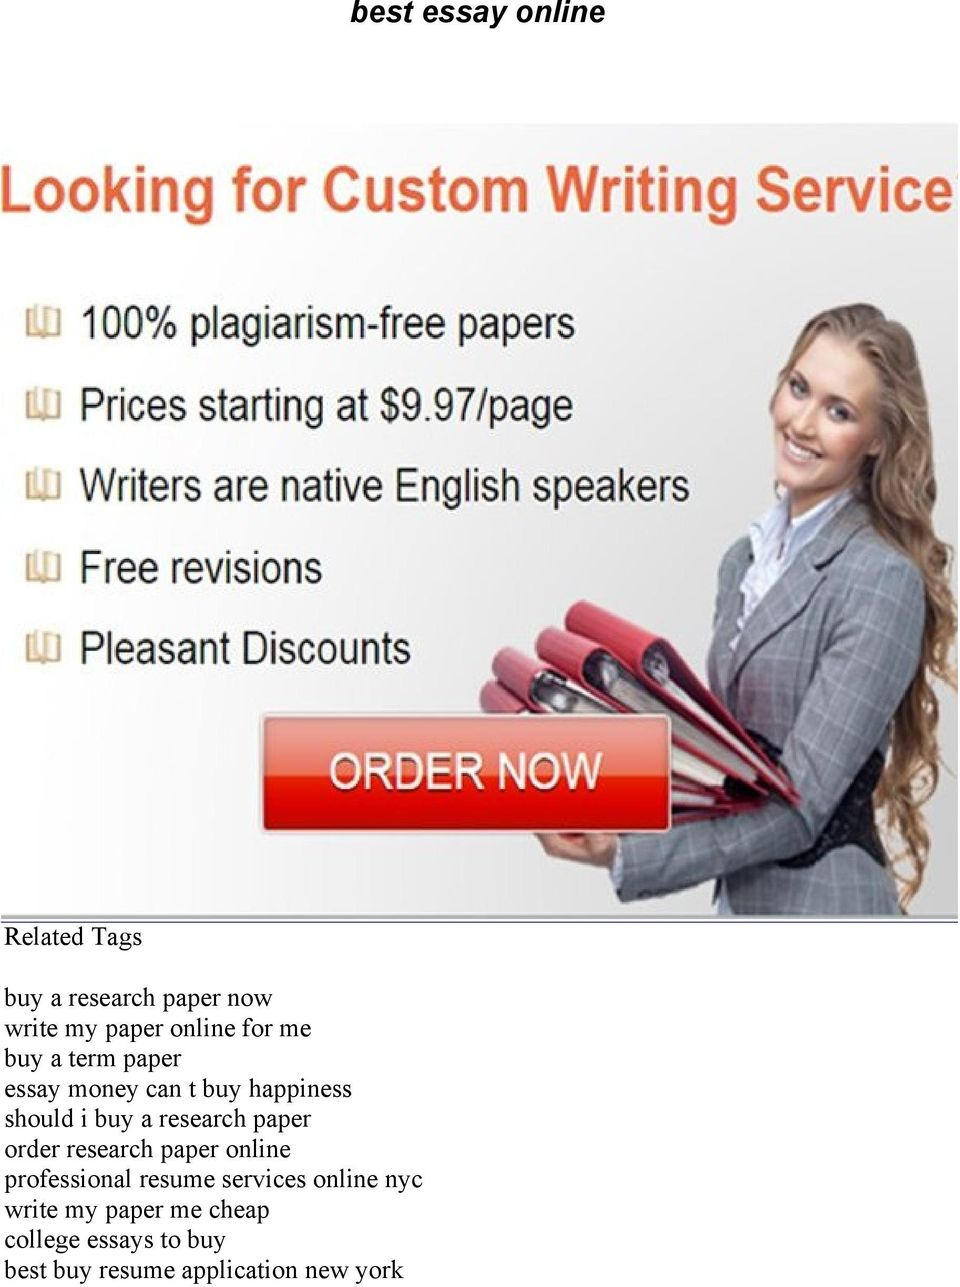 research paper order research paper online professional resume services online